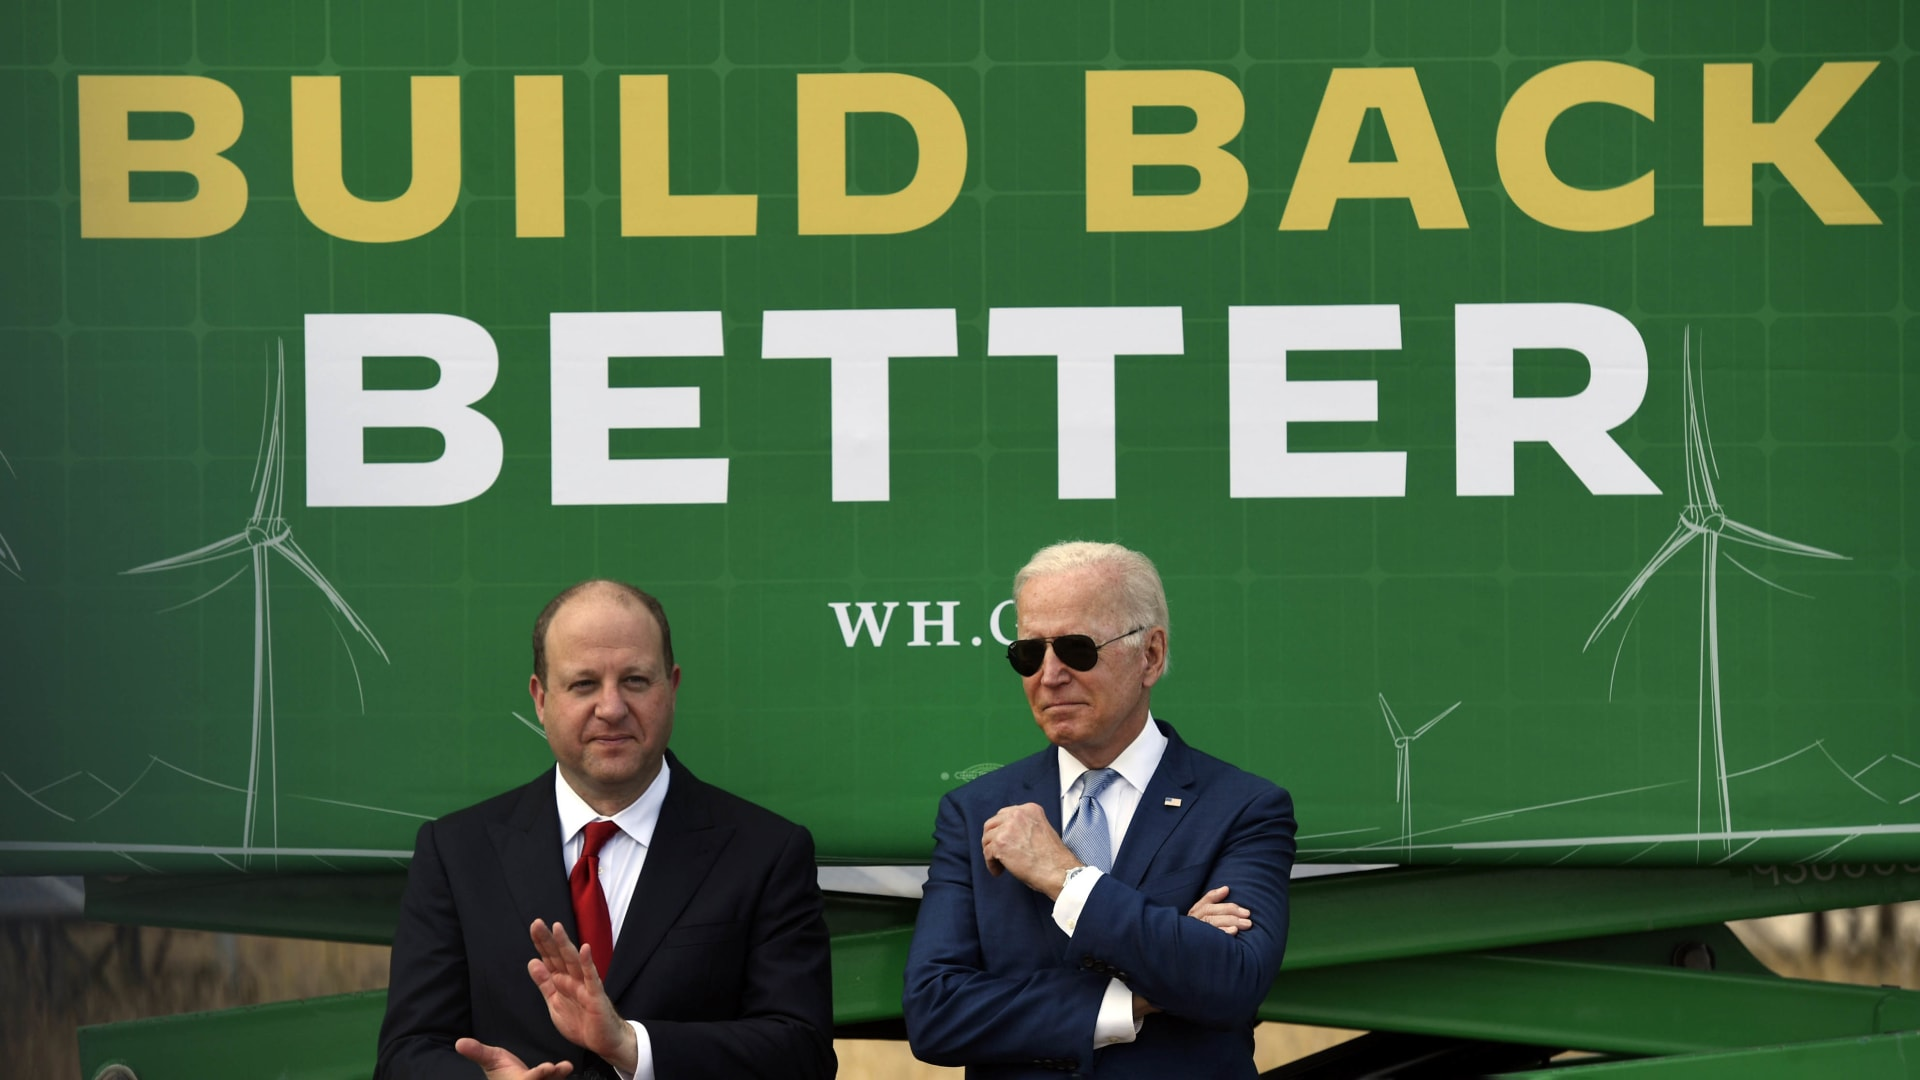 President Joe Biden, right, stands next to Colorado Governor Jared Polis on the grounds of the National Renewable Energy Laboratory on September 14 in Arvada, Colorado.